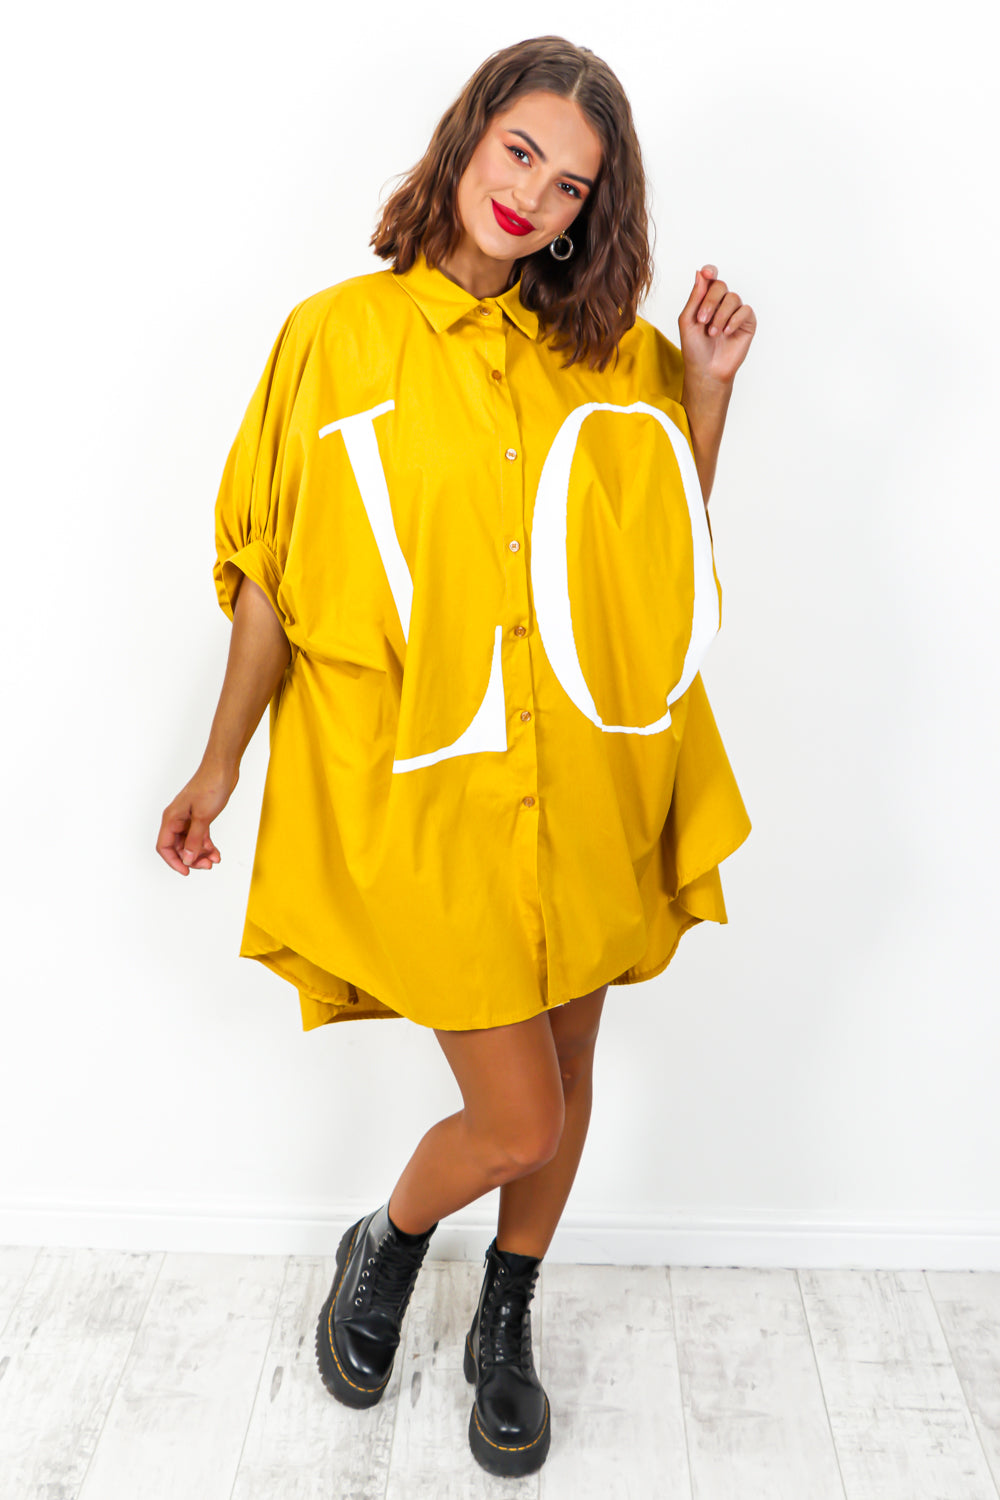 Spread The Love - Shirt Dress In MUSTARD